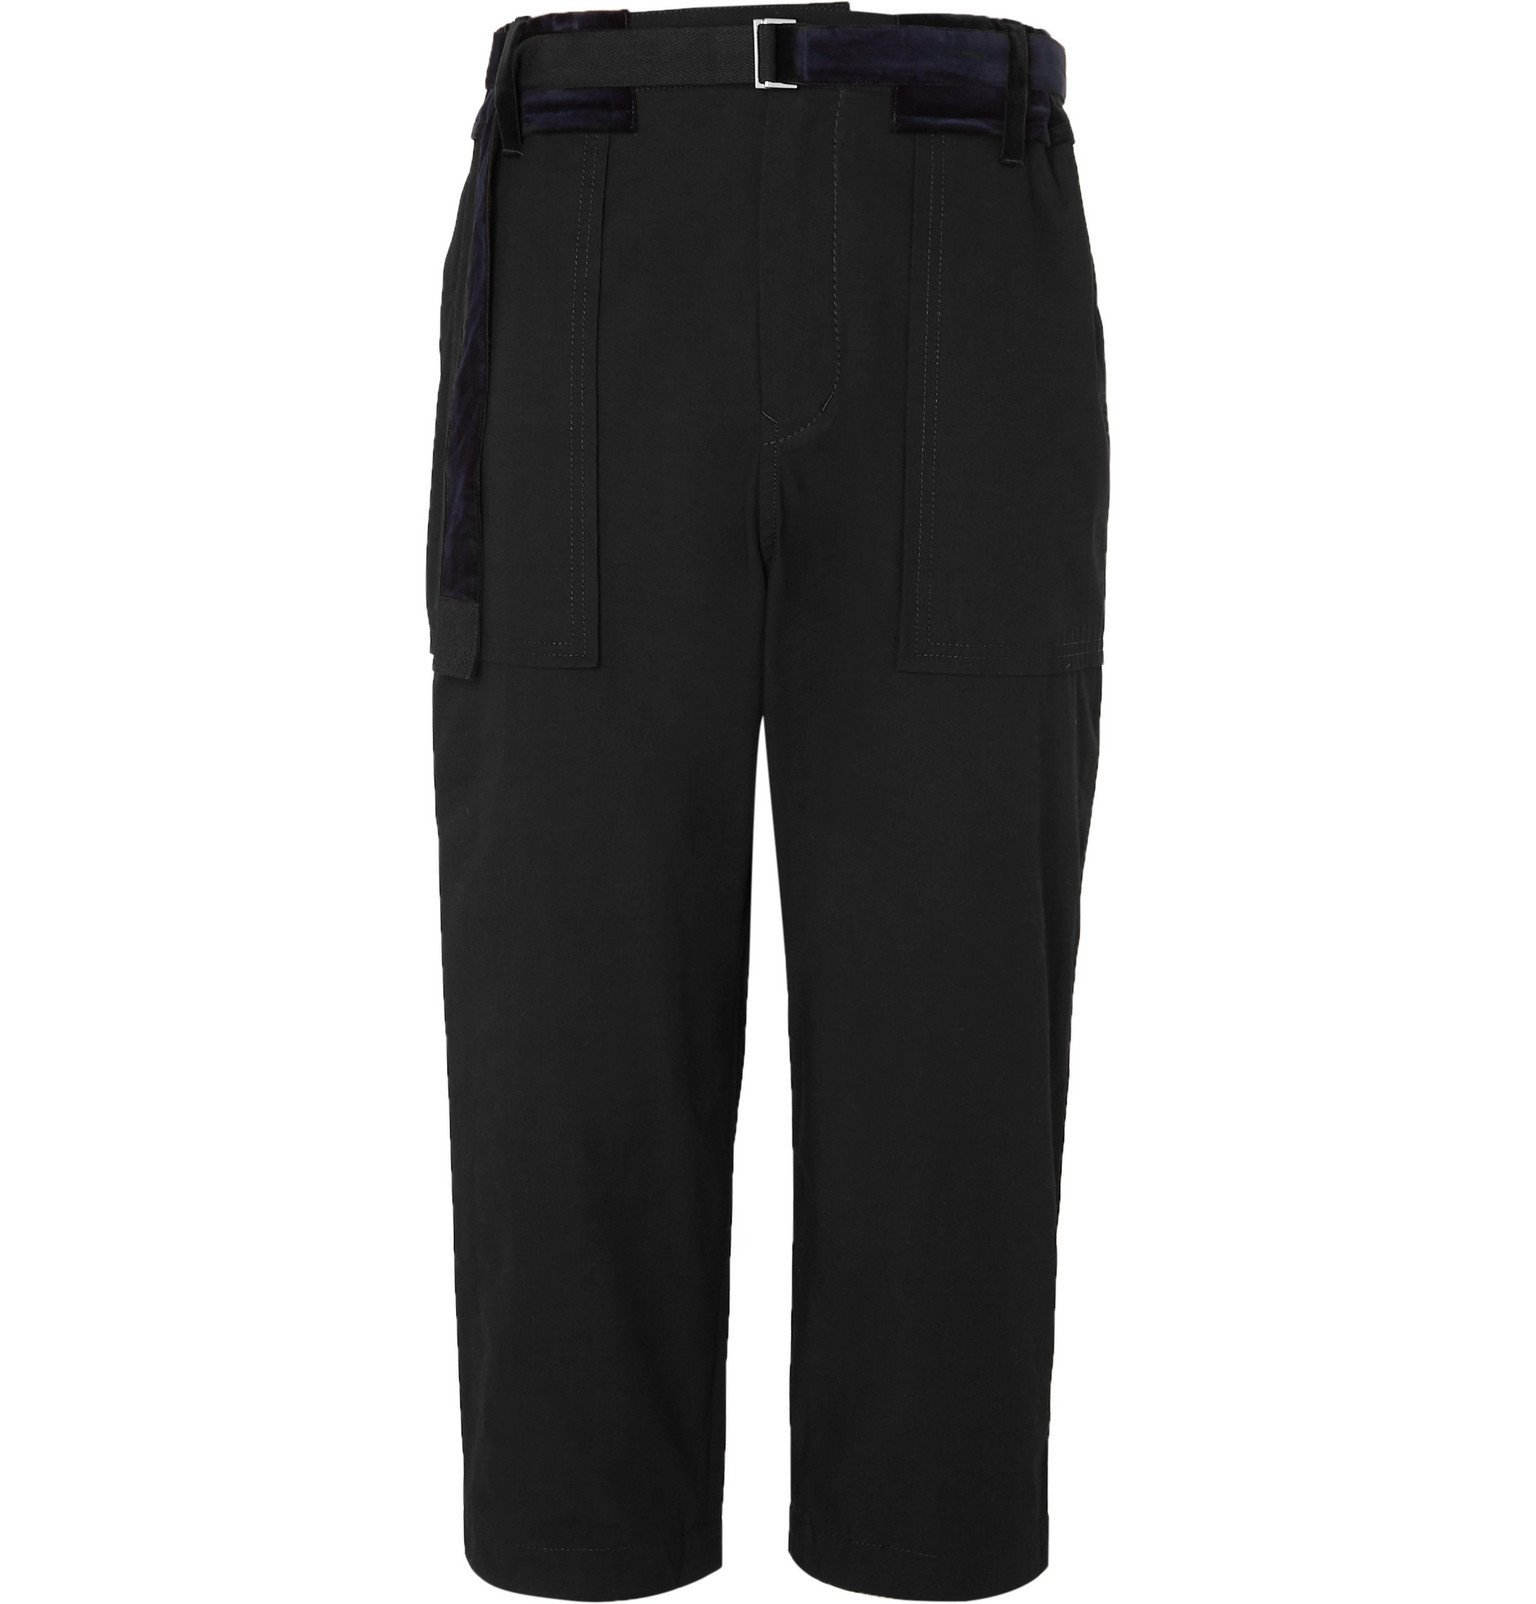 Sacai - Black Cropped Tapered Velvet-Trimmed Cotton-Blend Trousers - Black